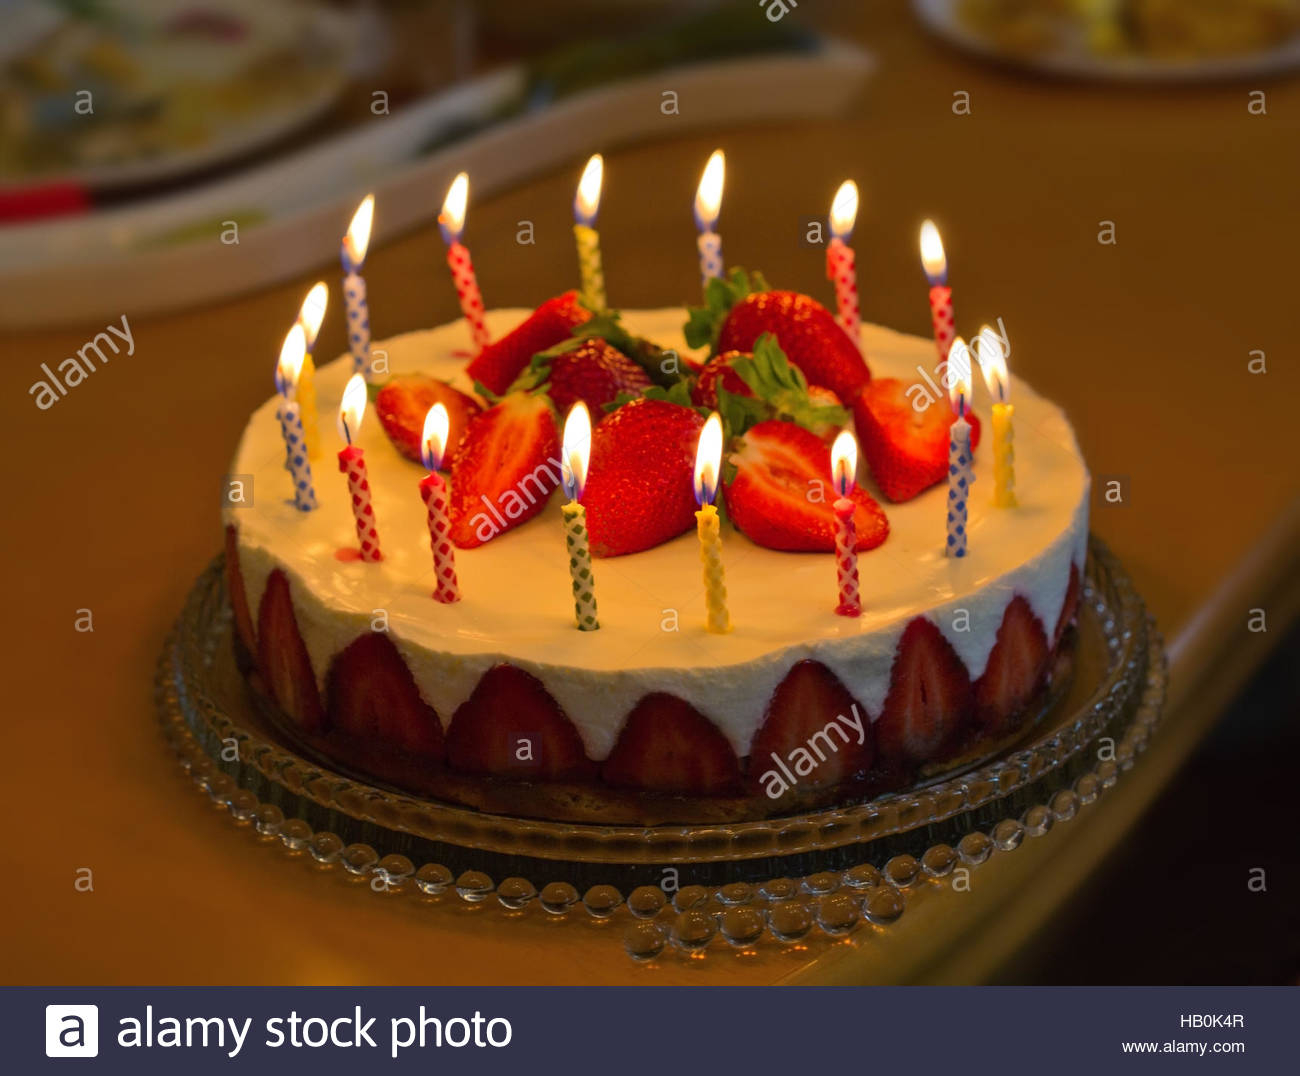 Candle Icing Cake Photography Hd Birthday